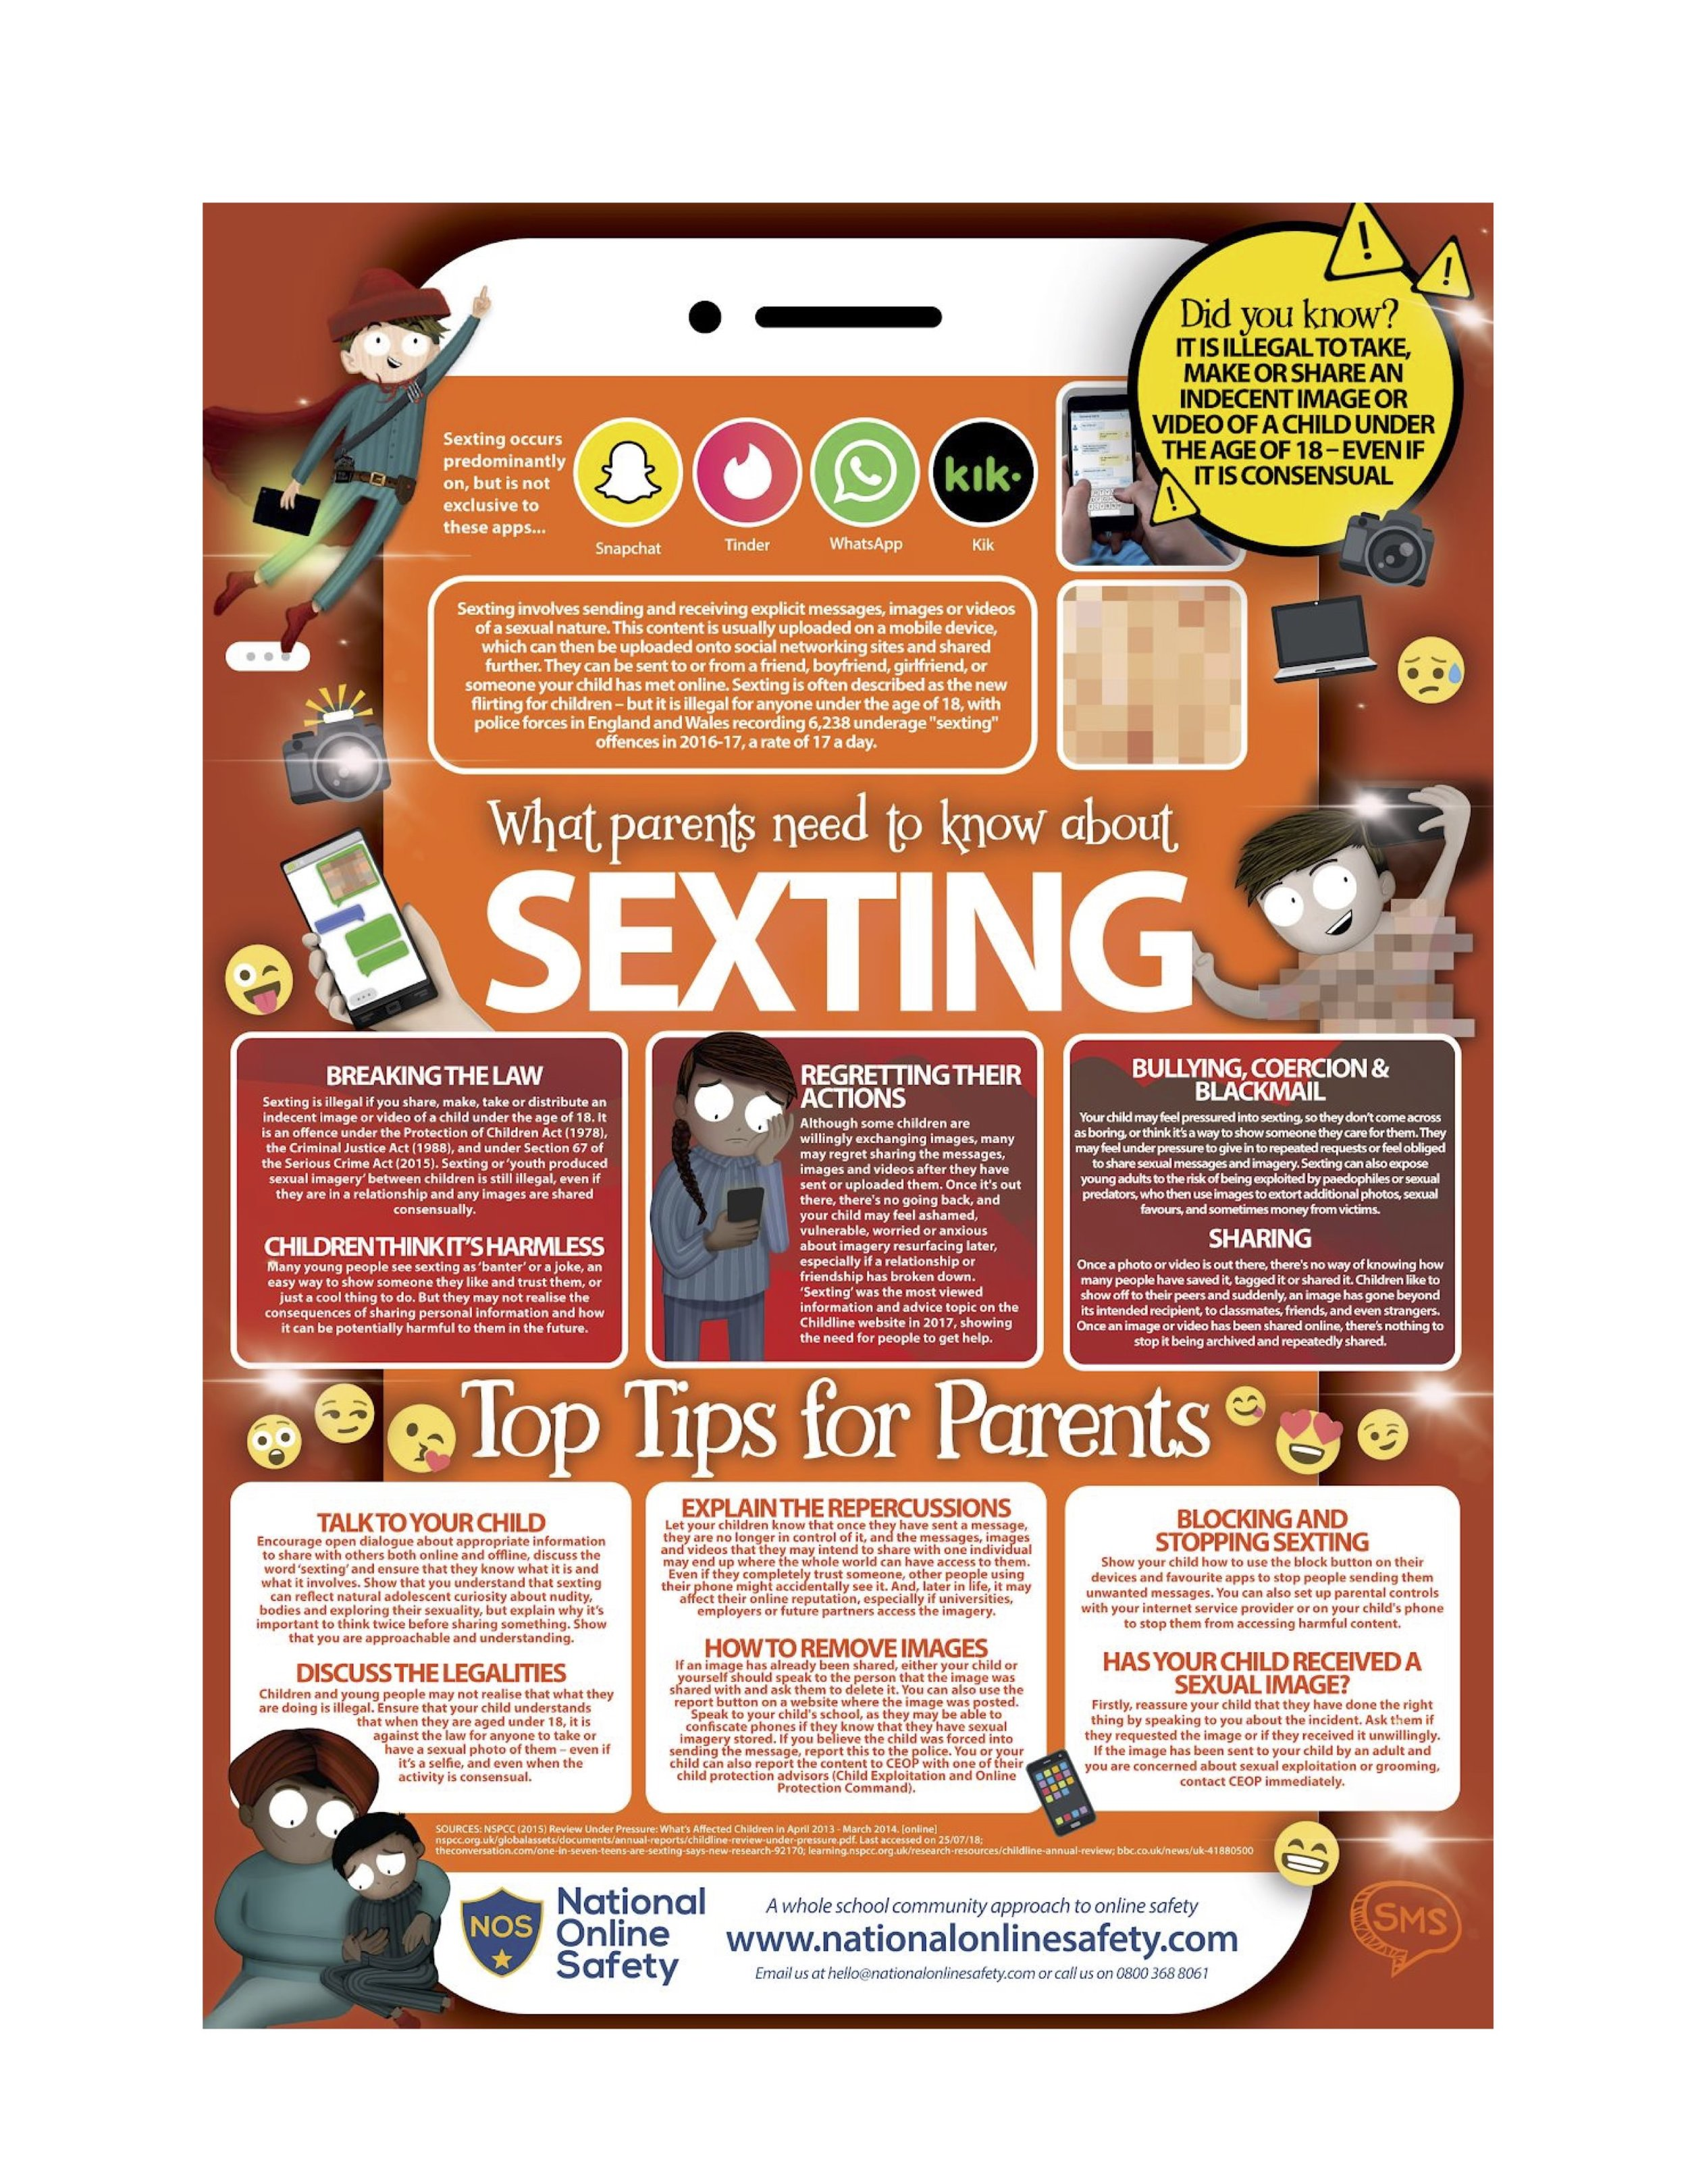 Guide to Parents About the Dangers of 'Sexting'